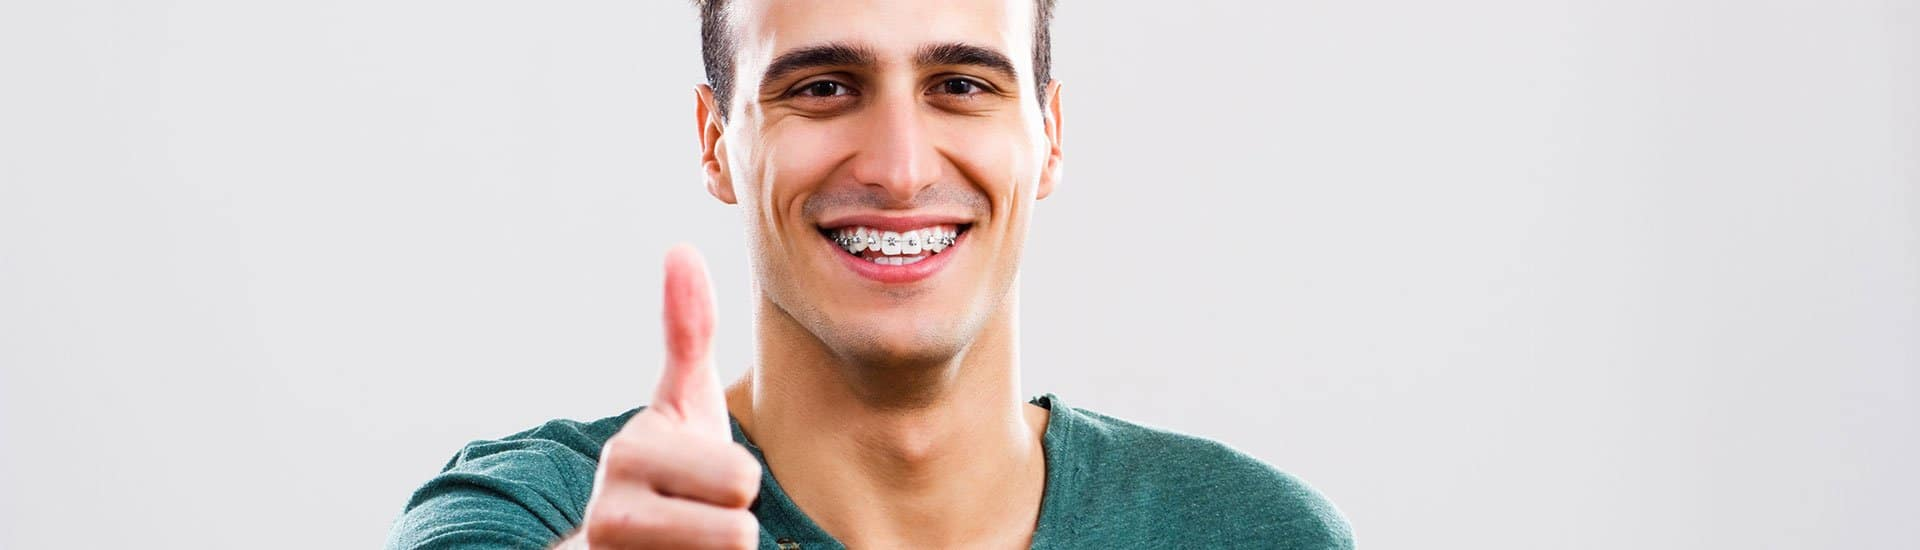 About Orthodontics and Orthodontic Treatment